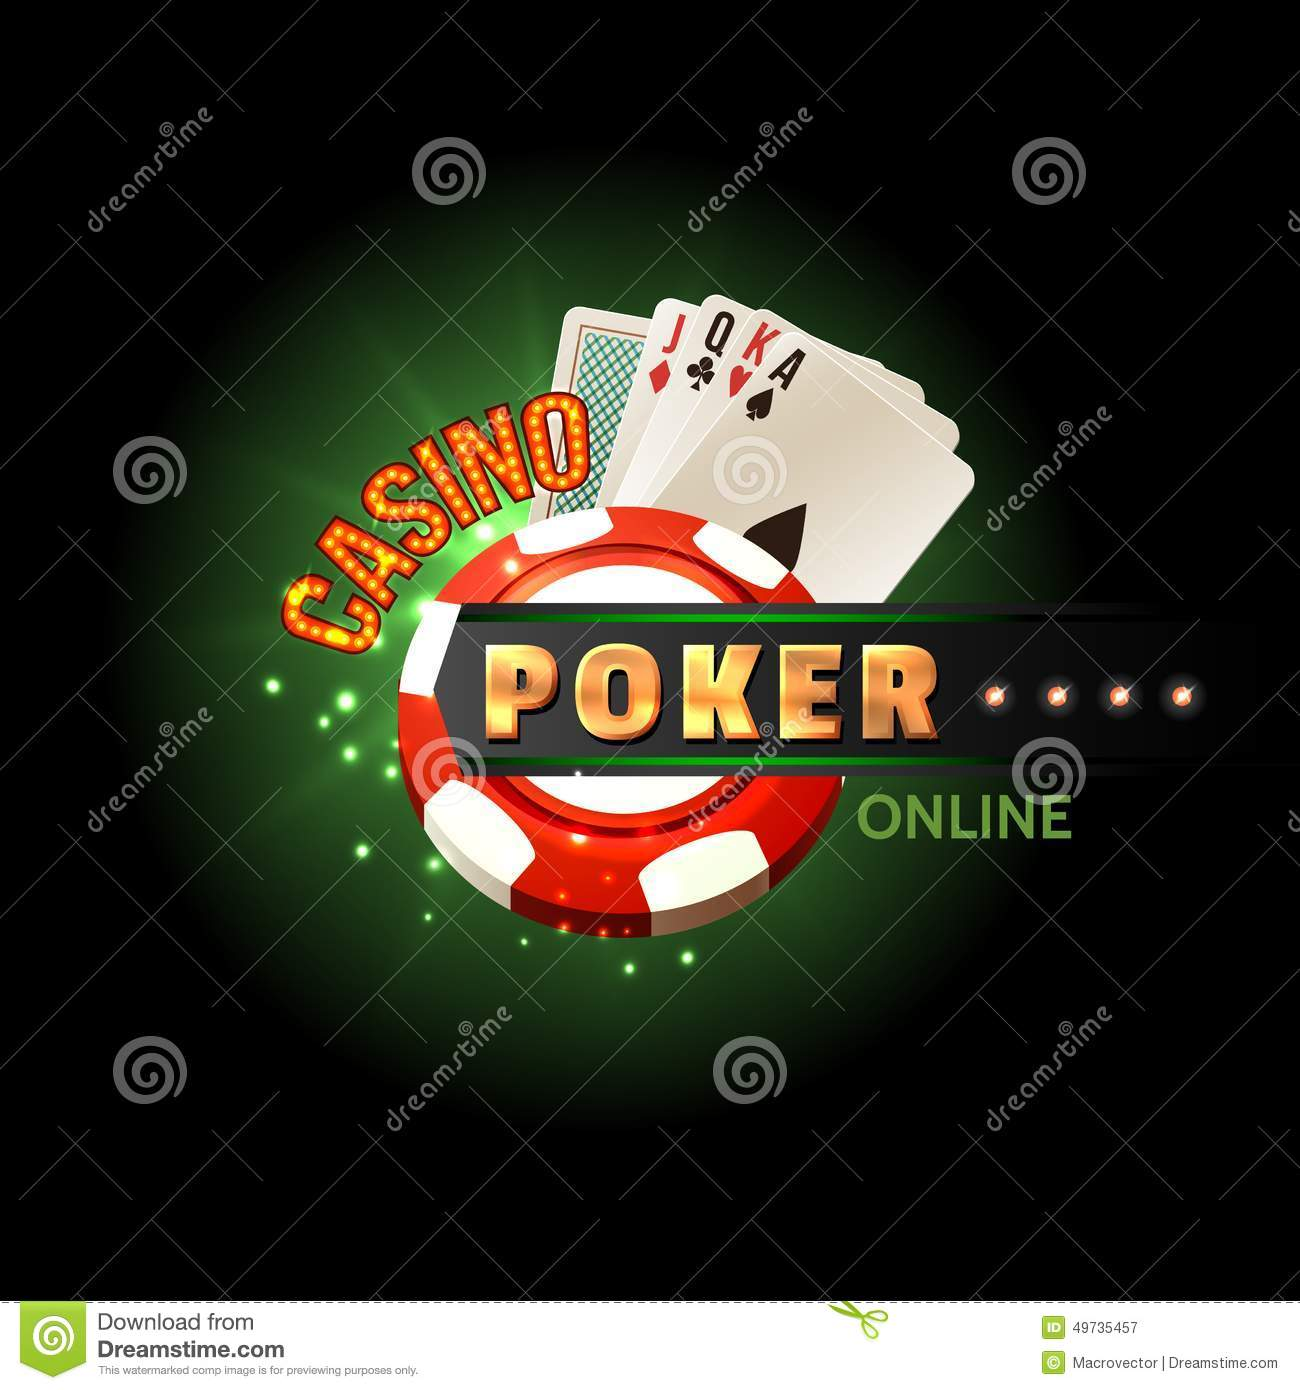 Poker online playbonds cassino - 548772